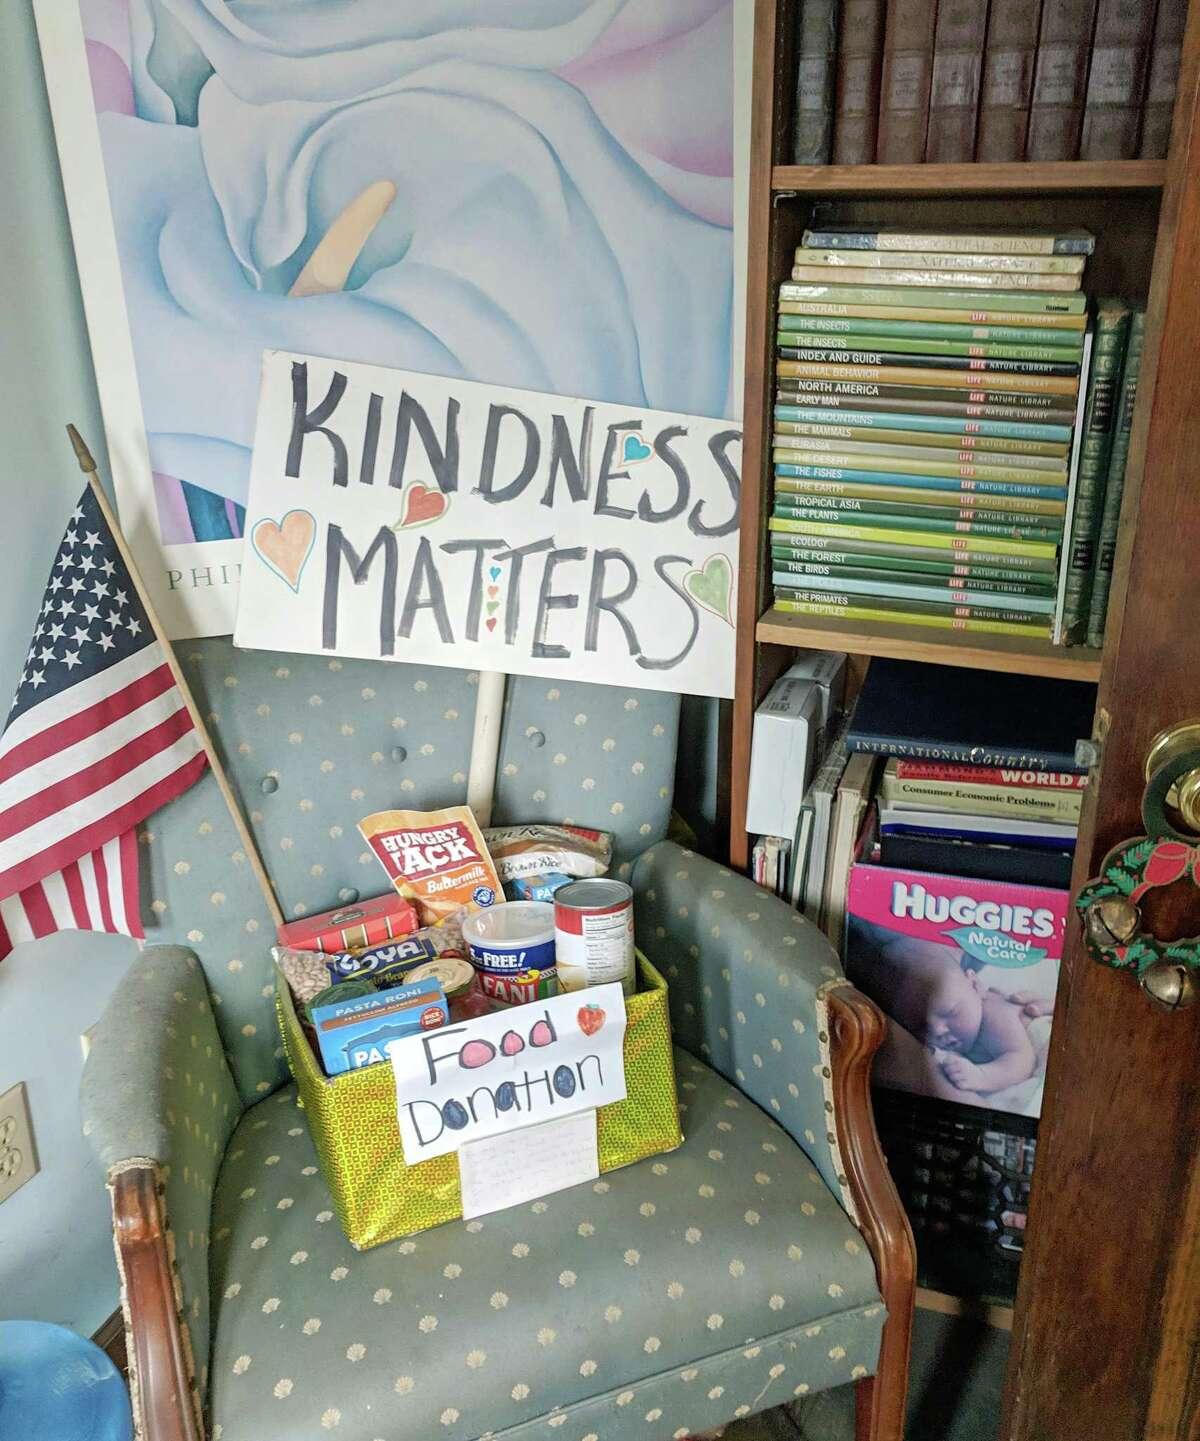 Bennett's Books, at 171 Main St., in Deep River, is a community supported bookstore.